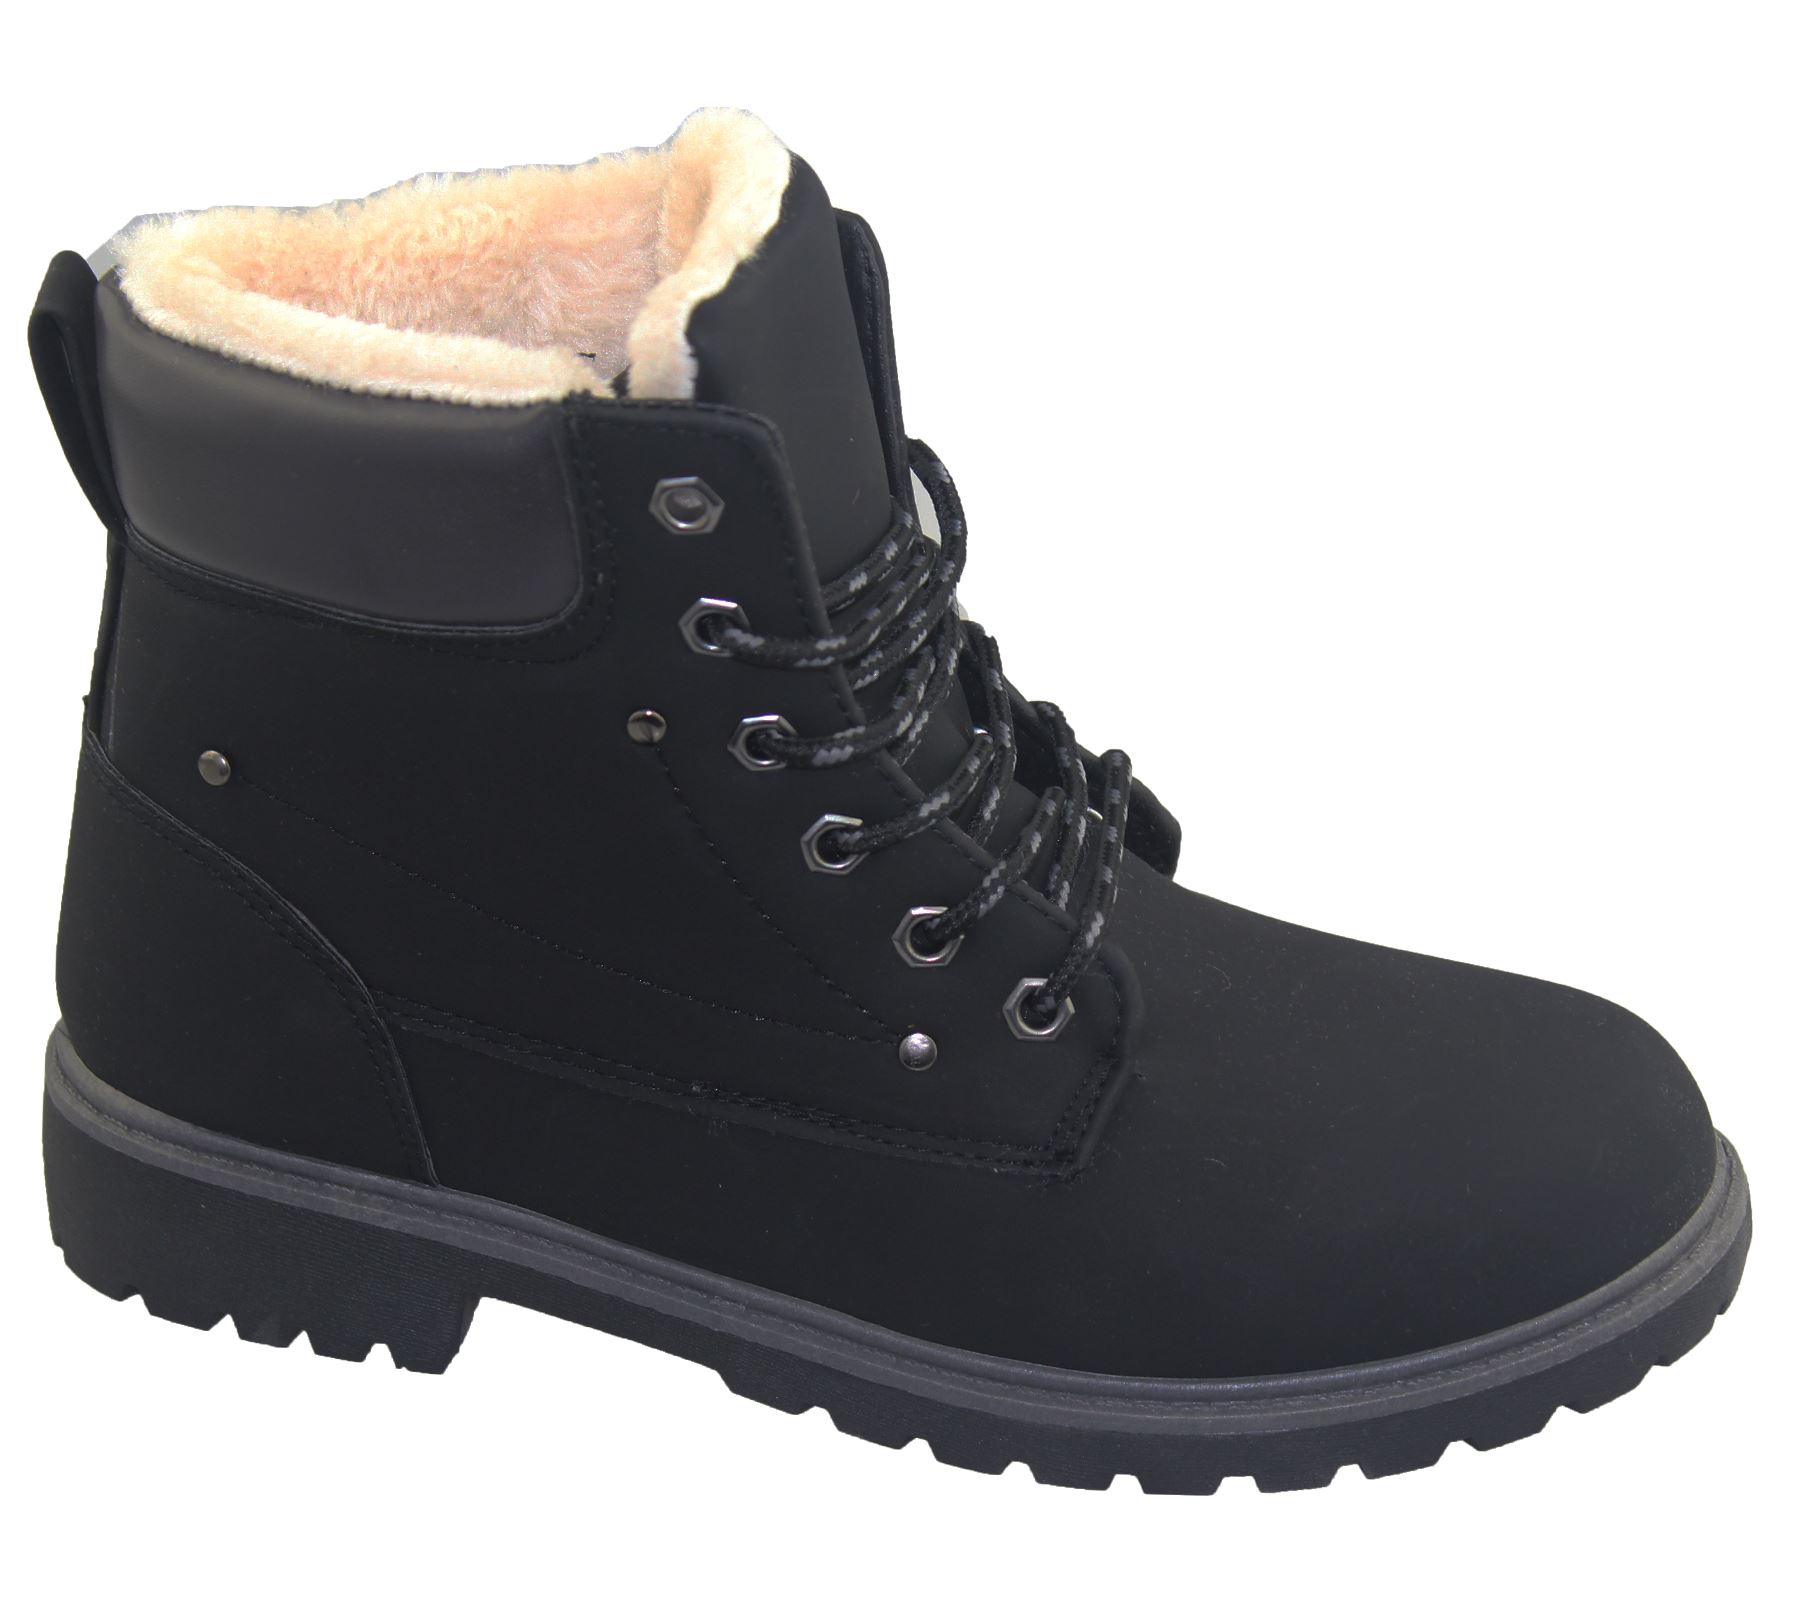 womens warm ankle boots combat hiking work high top desert